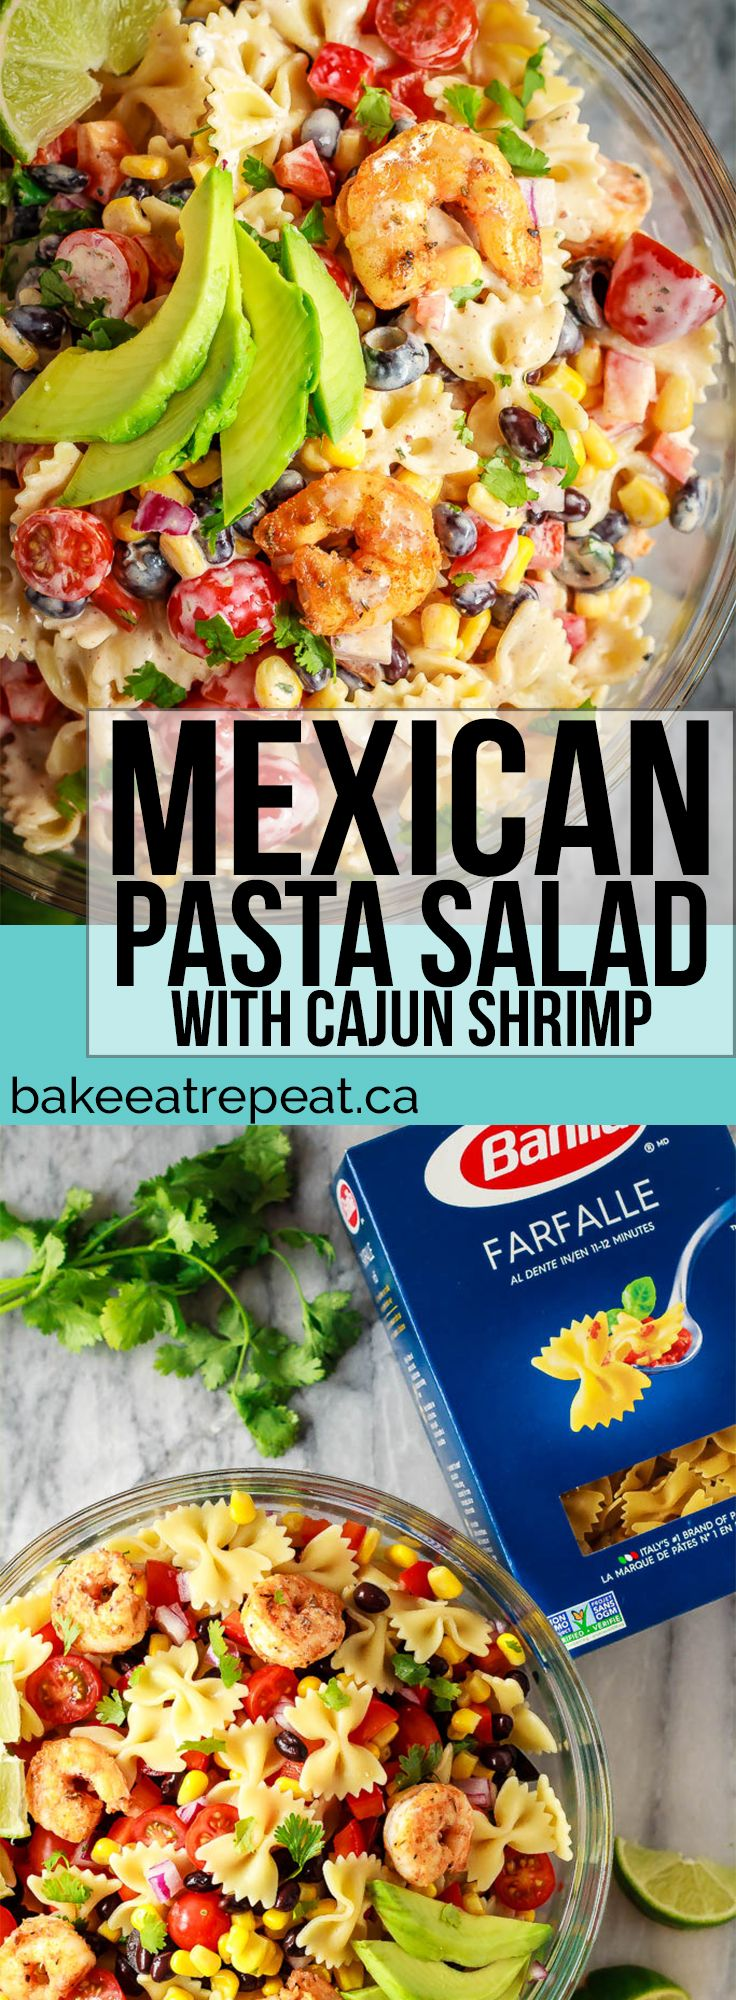 This Mexican pasta salad with cajun shrimp is perfect for summer - easy to make, the whole family will love it, and it can even be made ahead of time! #ad @BarillaCan